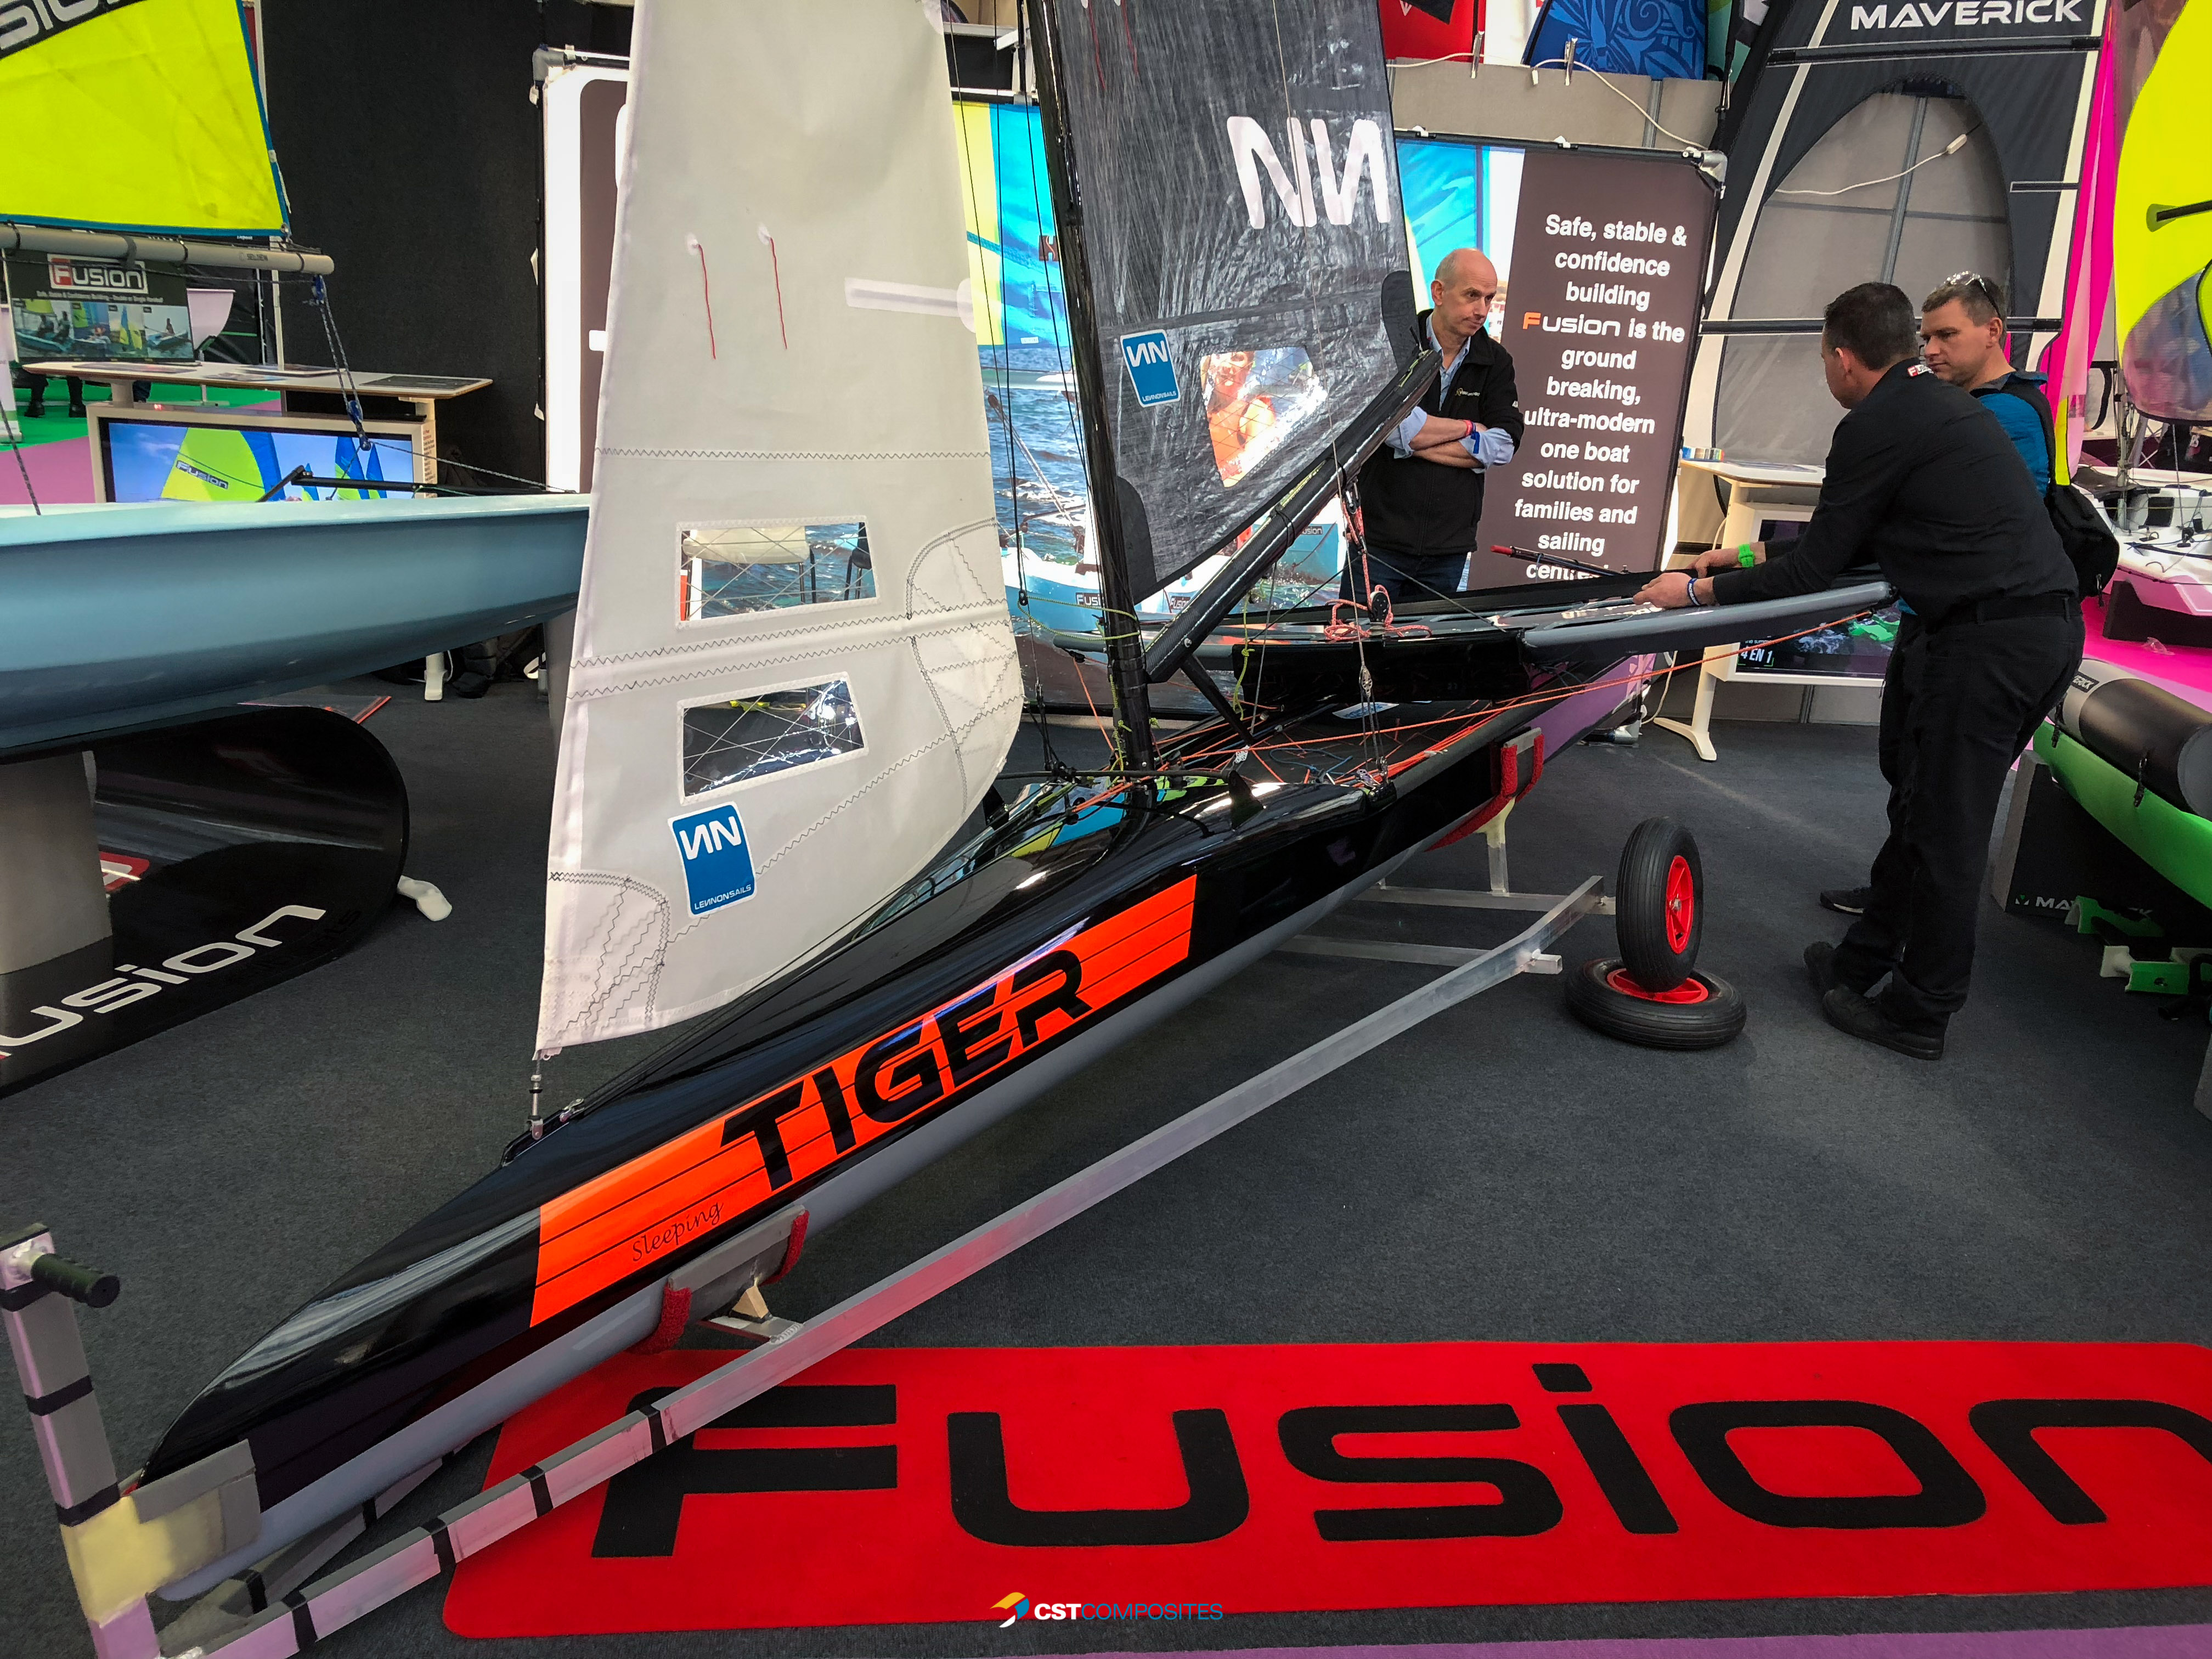 Images from the RYA Dinghy Show